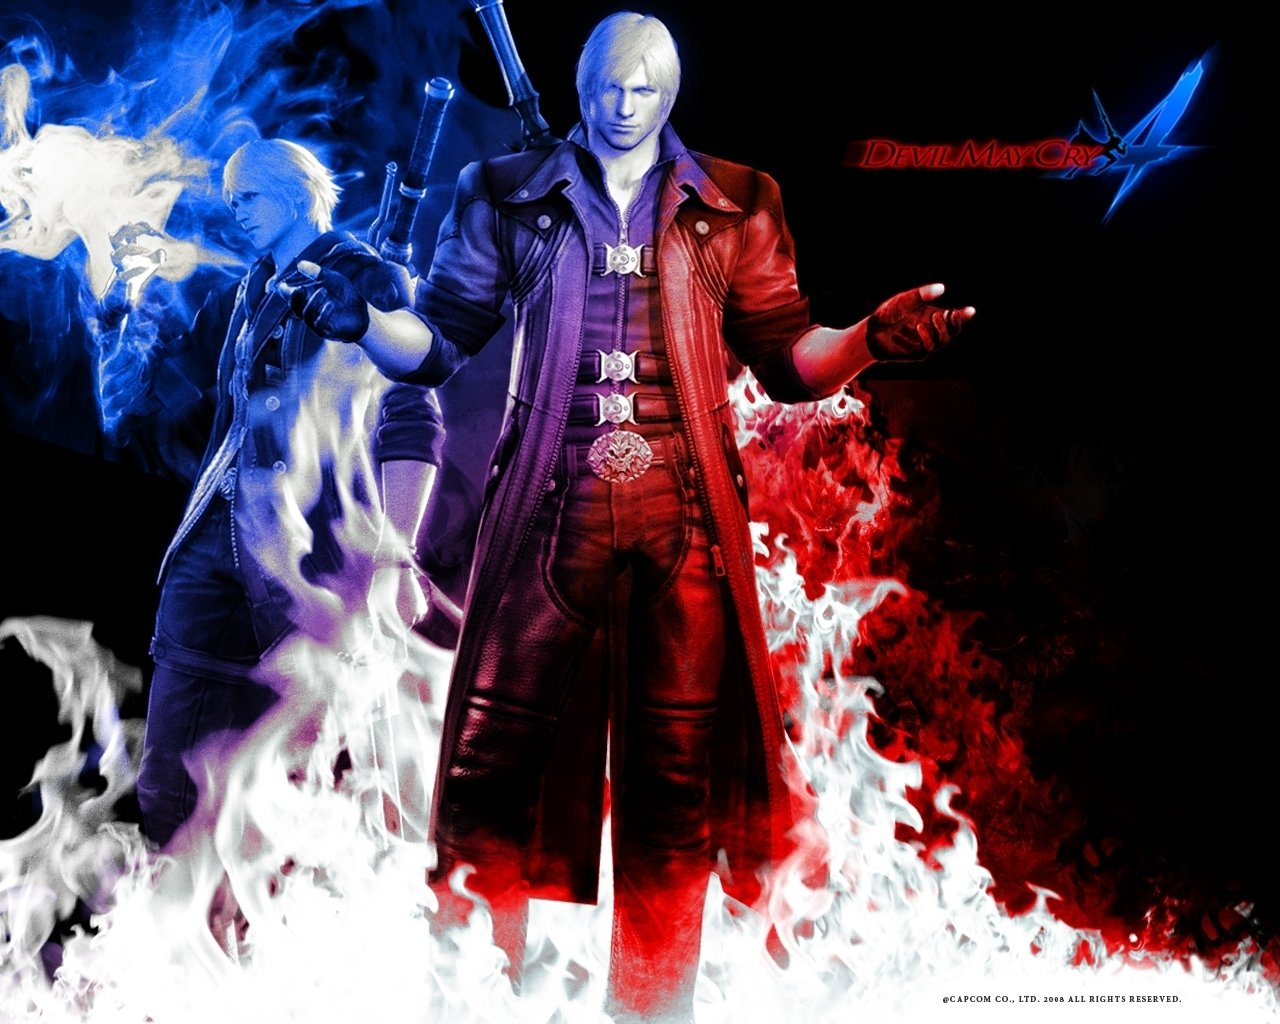 Devil May Cry 4 Wallpapers Hd For Desktop Backgrounds